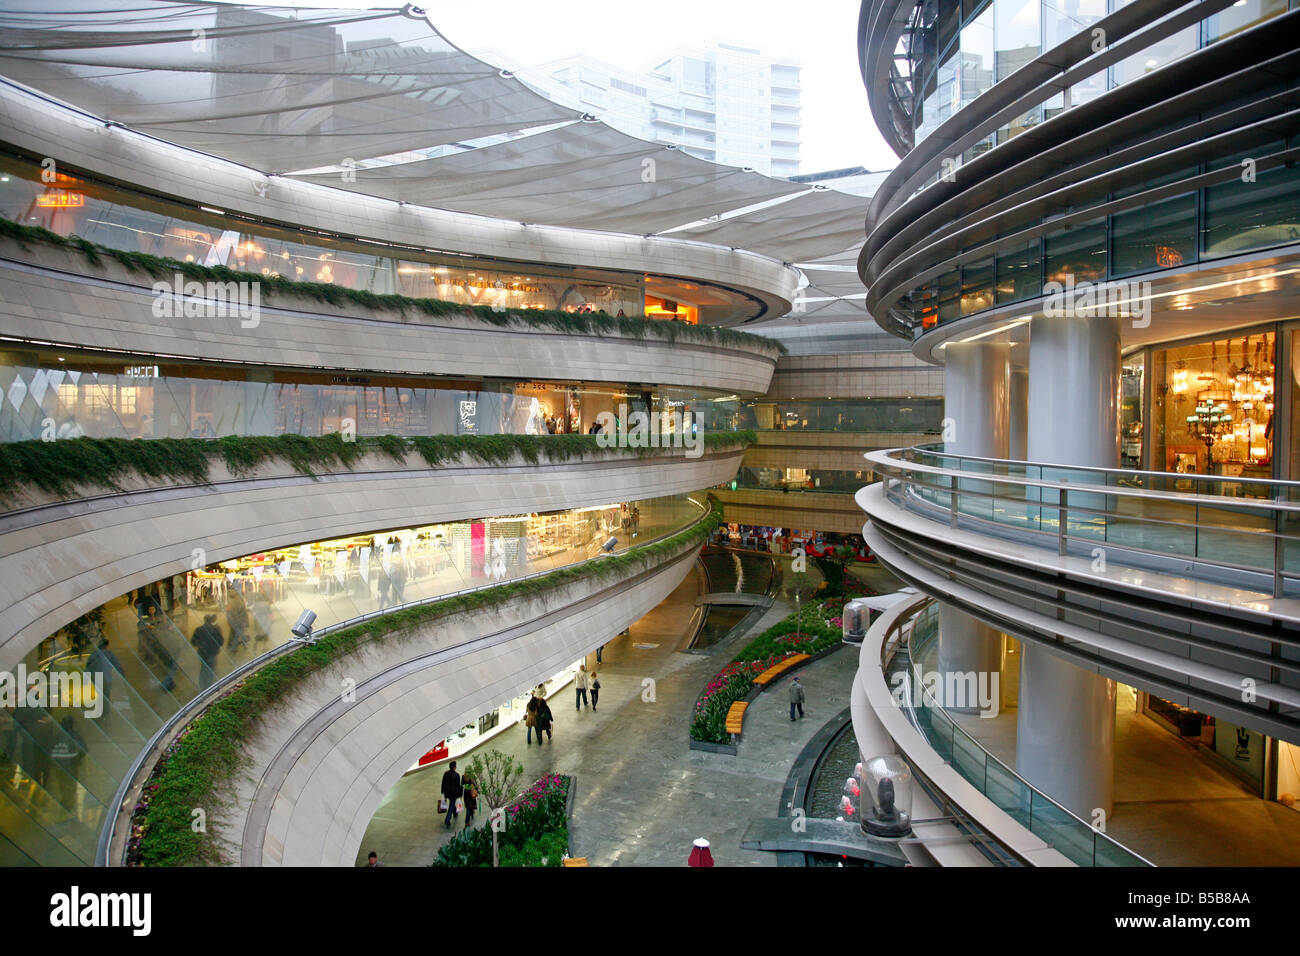 Mall of istanbul sales office ares architecture - Kanyon Shopping Mall In Levent Area Istanbul Turkey Europe